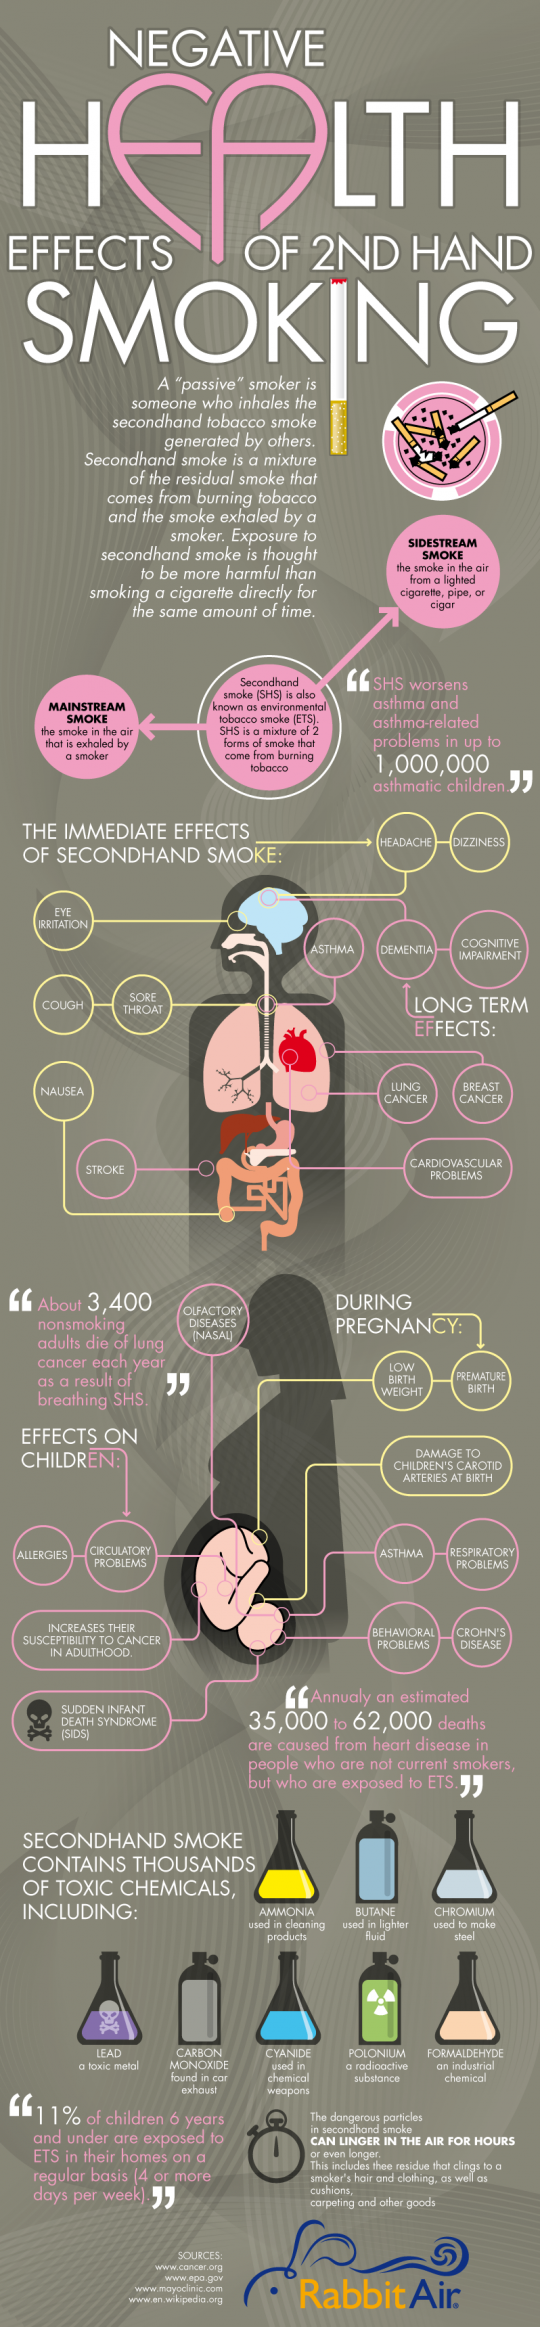 Health effects of second hand smoking.